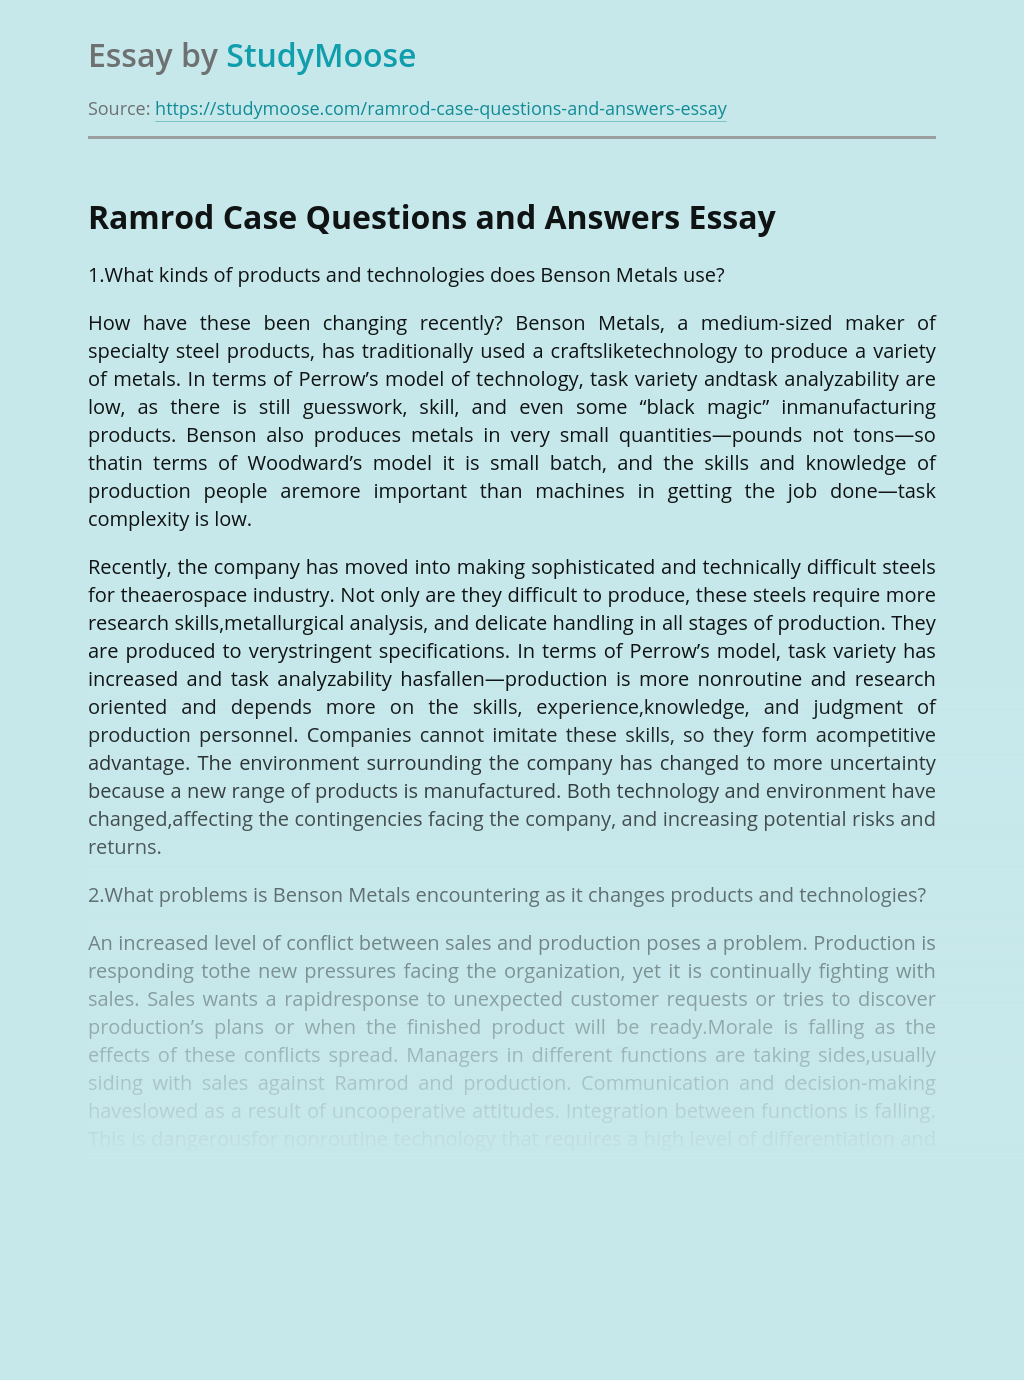 Ramrod Case Questions and Answers